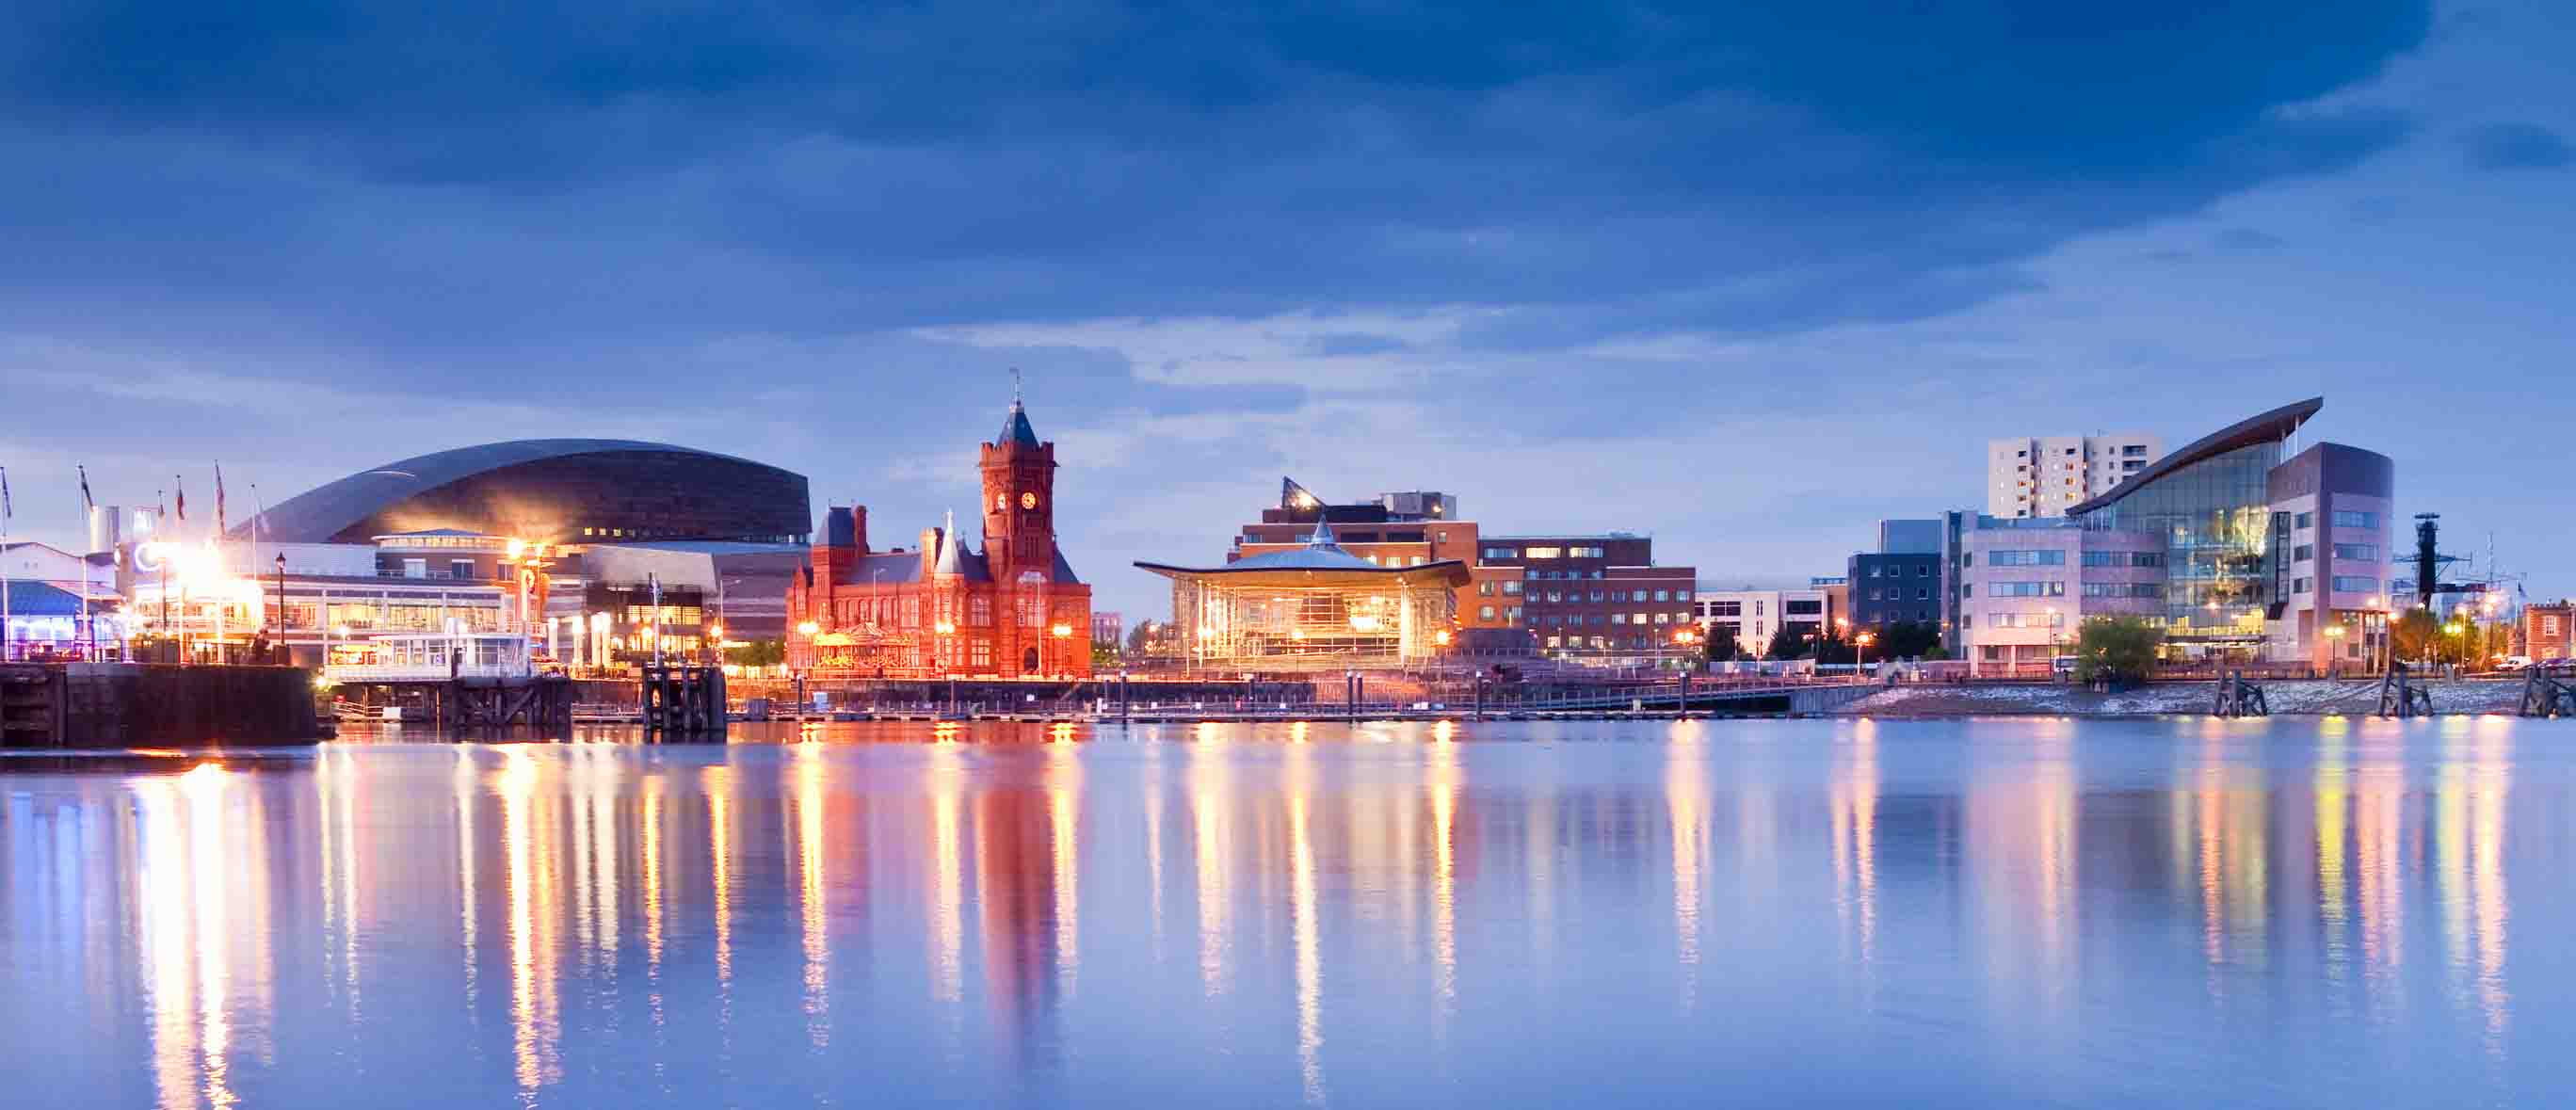 City Of Cardiff Image